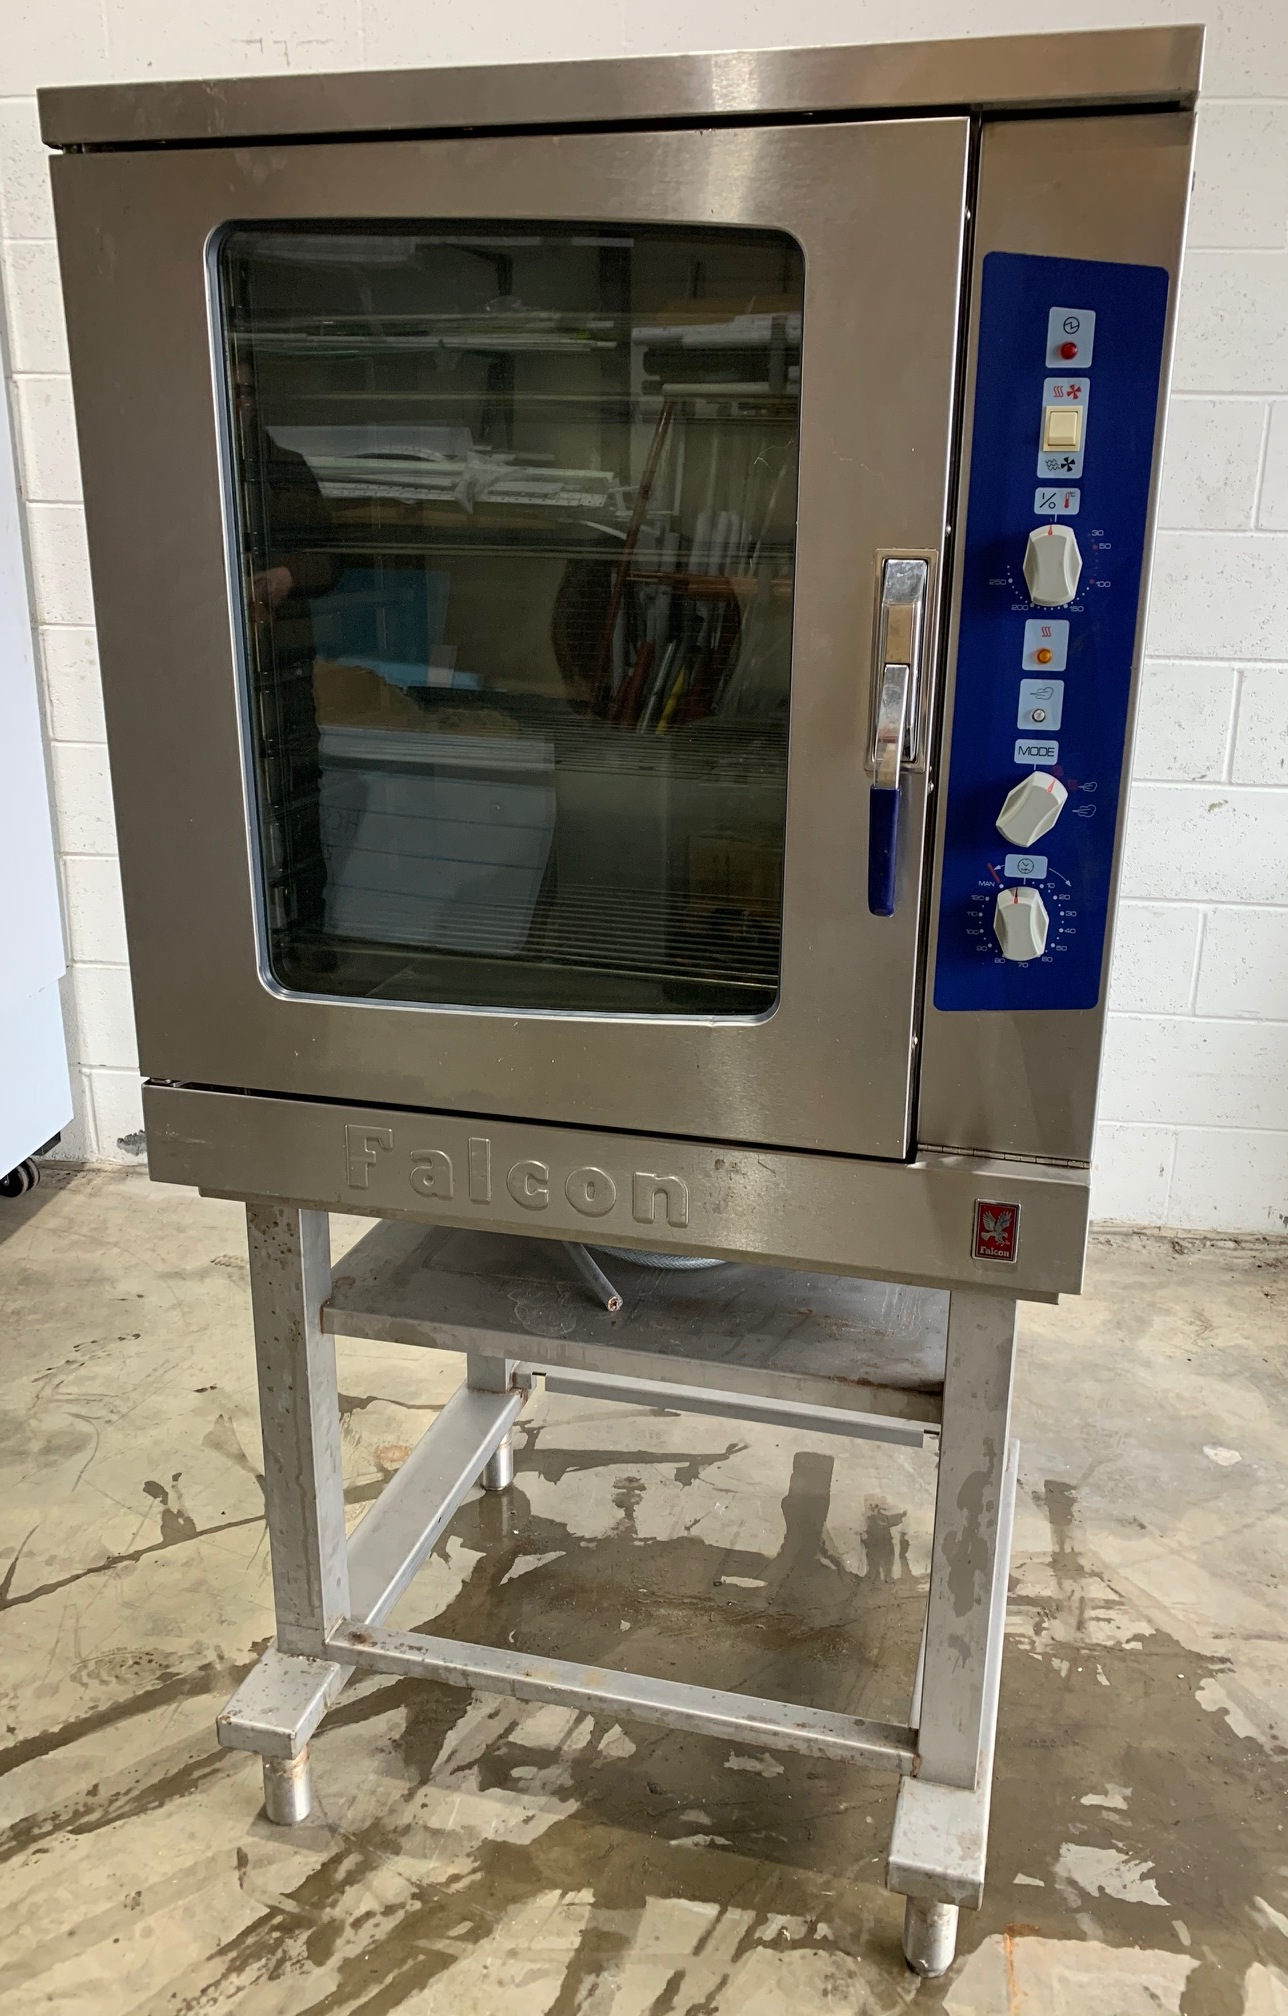 Falcon electric combination oven